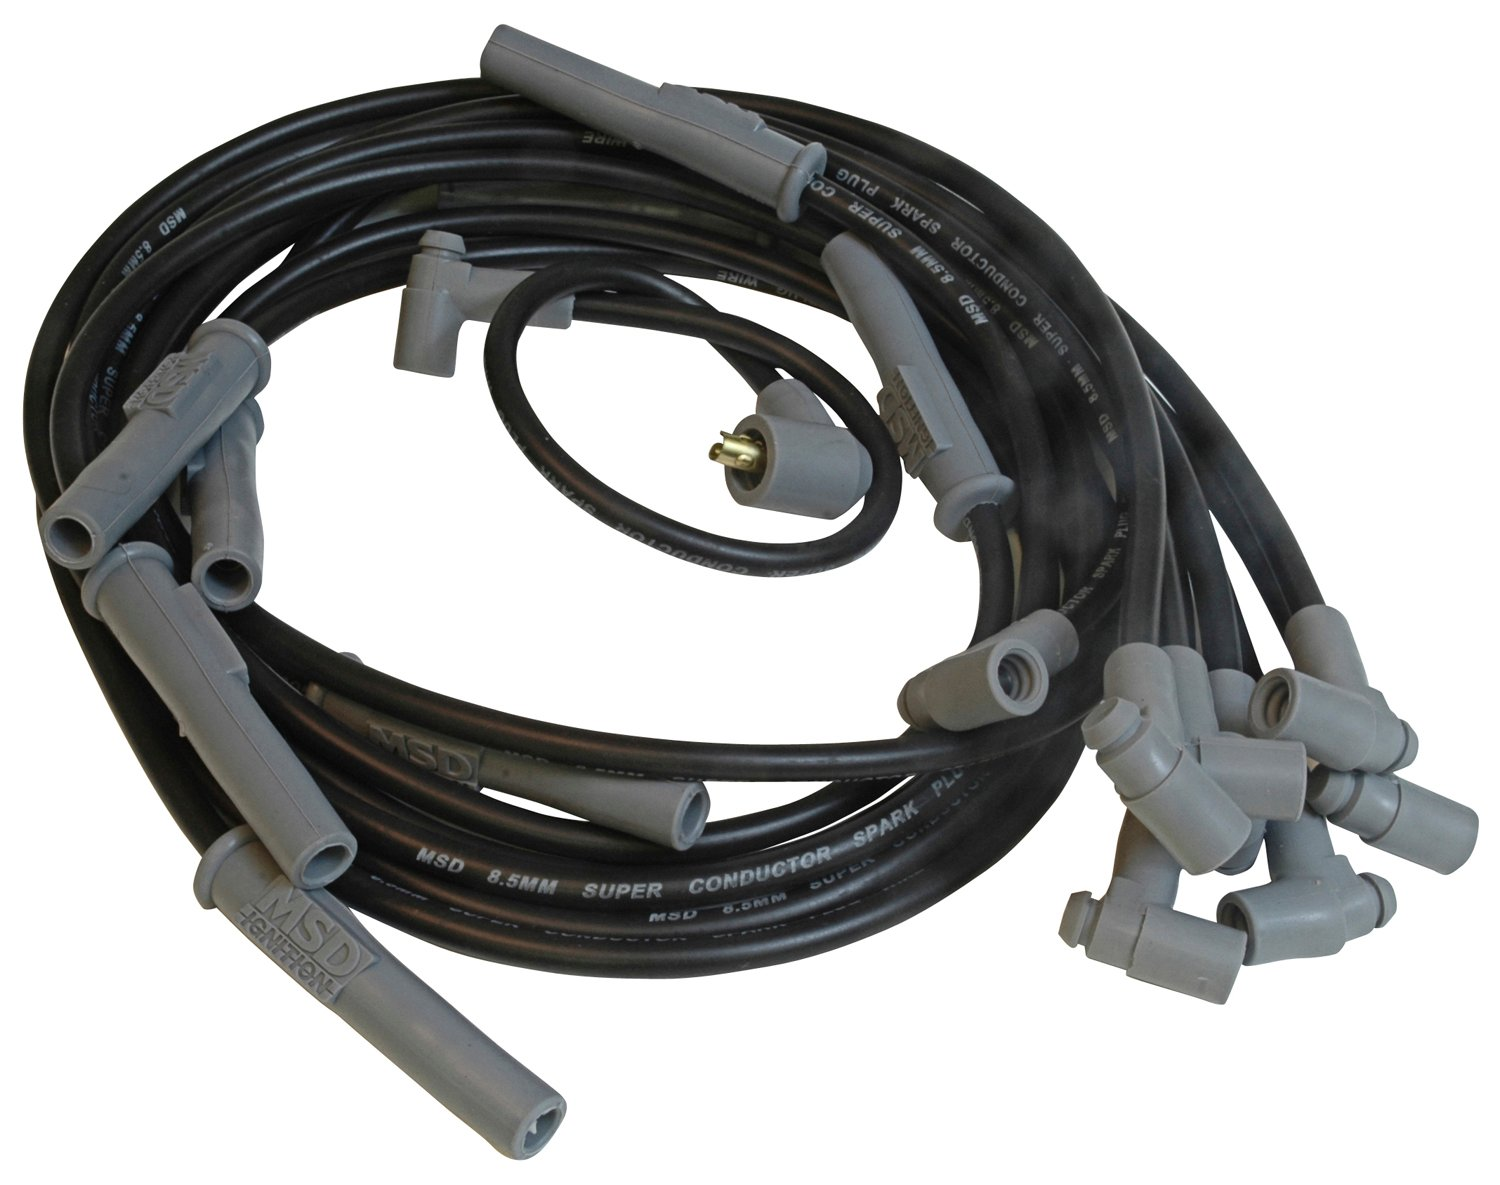 32733 - Wire Set, SC Blk, Chry. 383-440 HEI for MSD Dist. Image